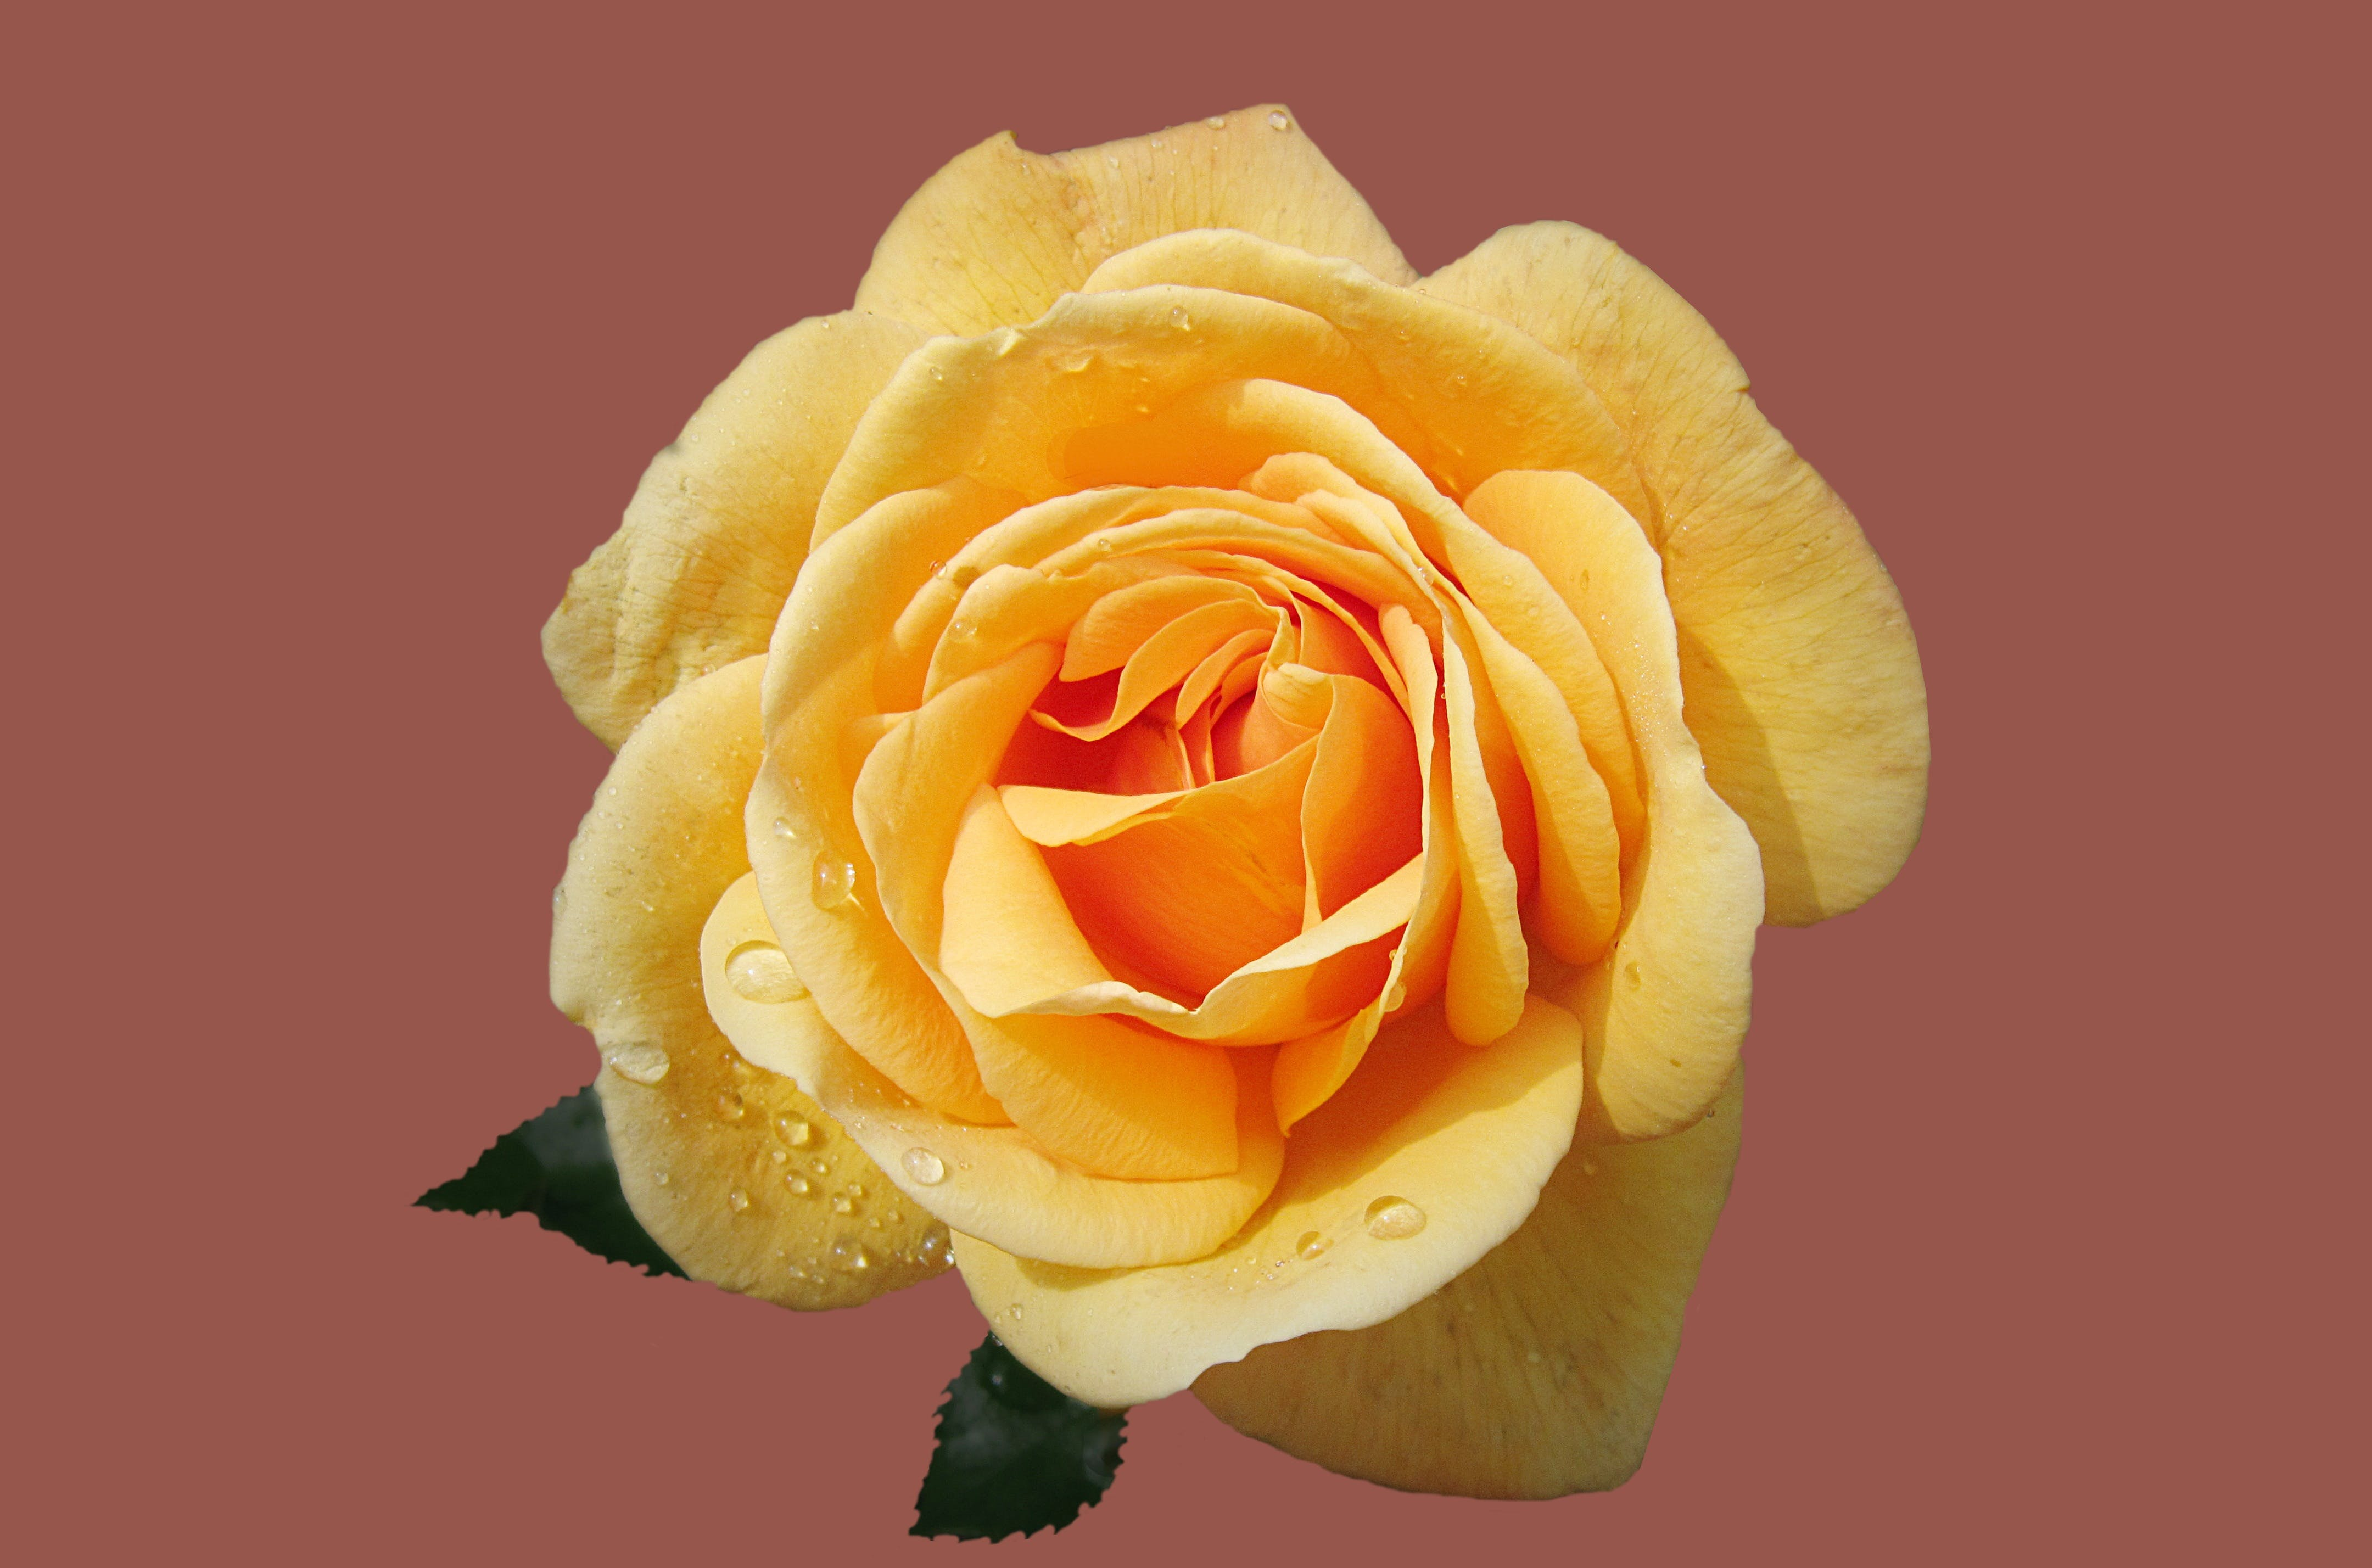 Close-up Photography of Yellow Rose With Water Dew